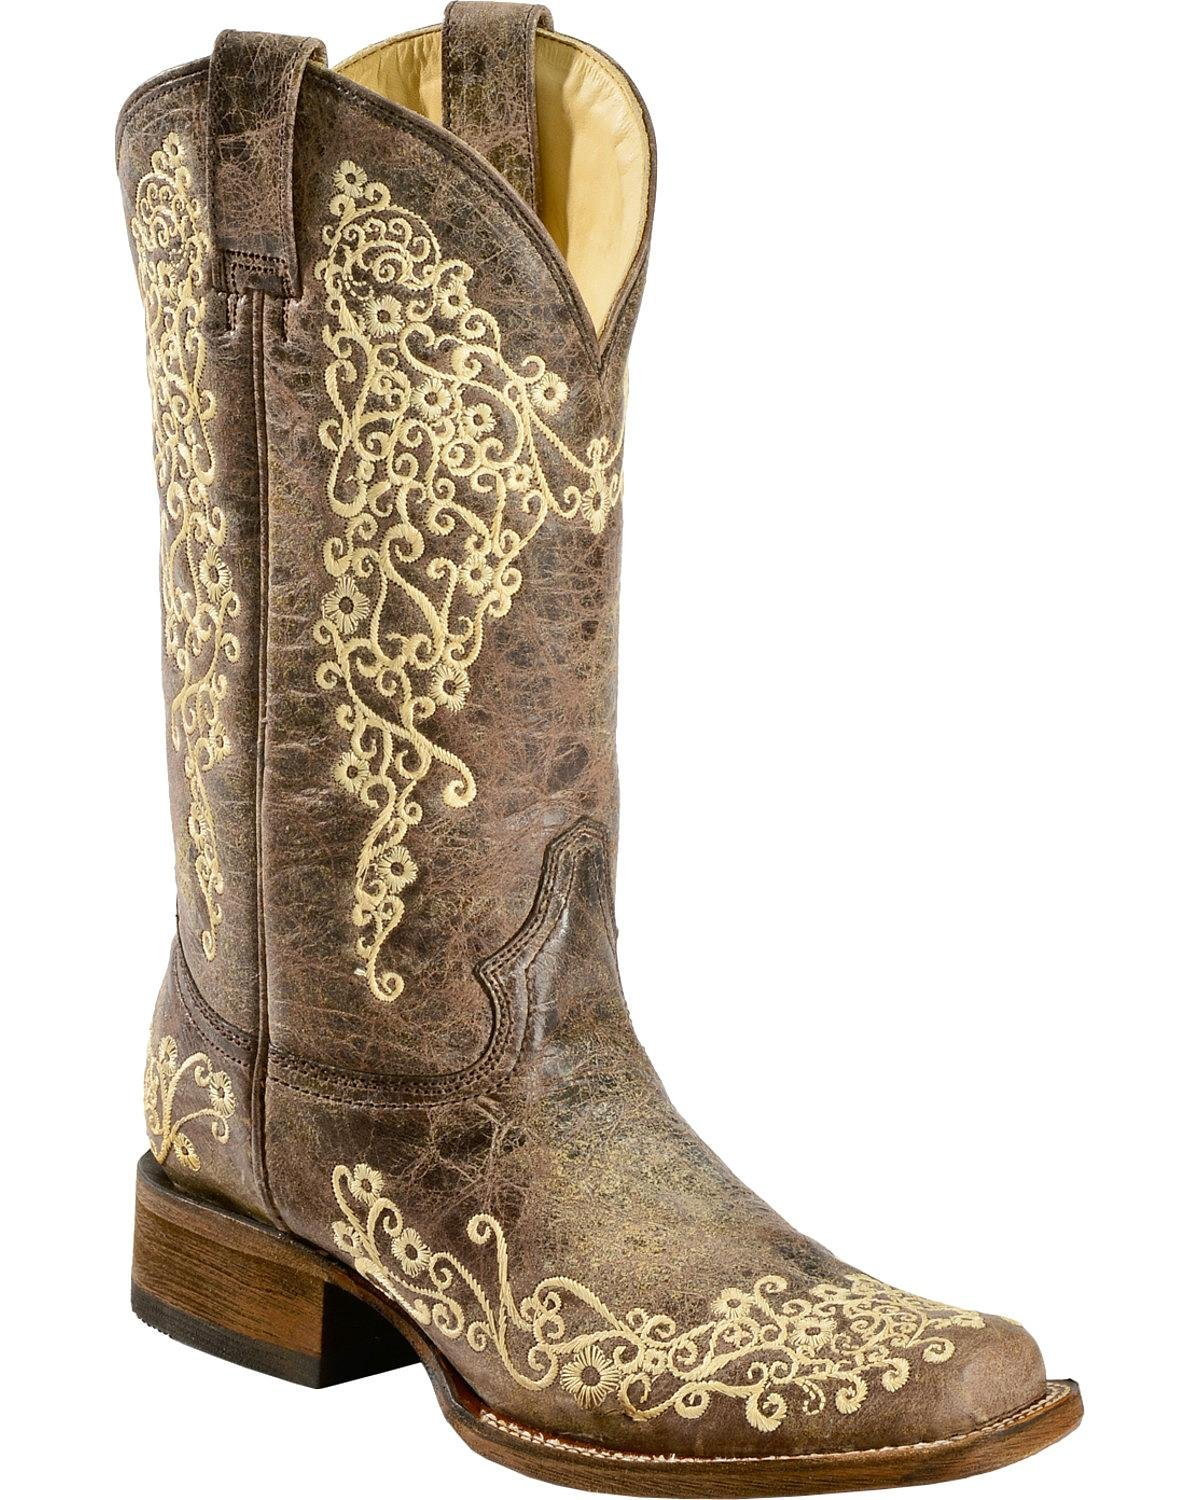 CORRAL Women's Crater Embroidered Cowgirl Boot Square Toe Brown 9.5 M US